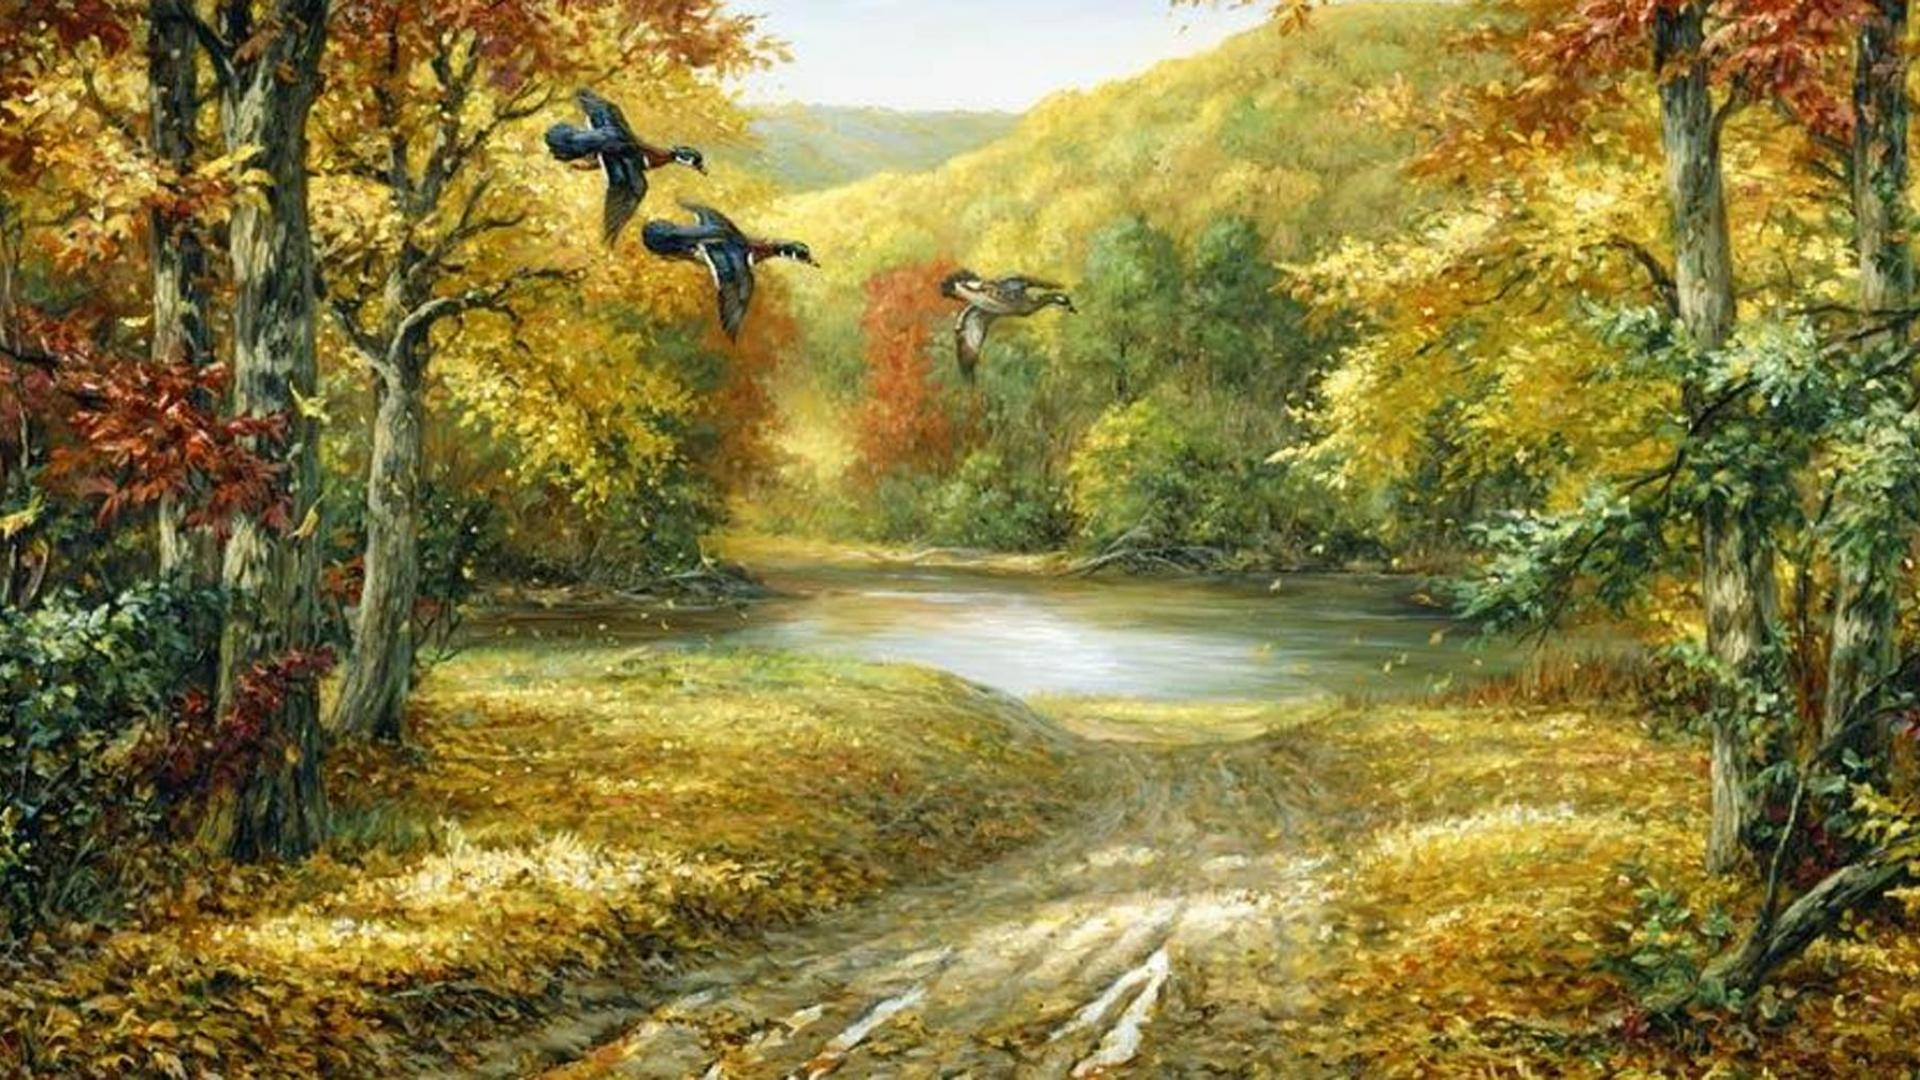 Wallpaper Tags: birds painted sky shrubs weeds brown ducks autumn yellow hills mountains outdoors fall beautiful trees water nature green plants forest ...